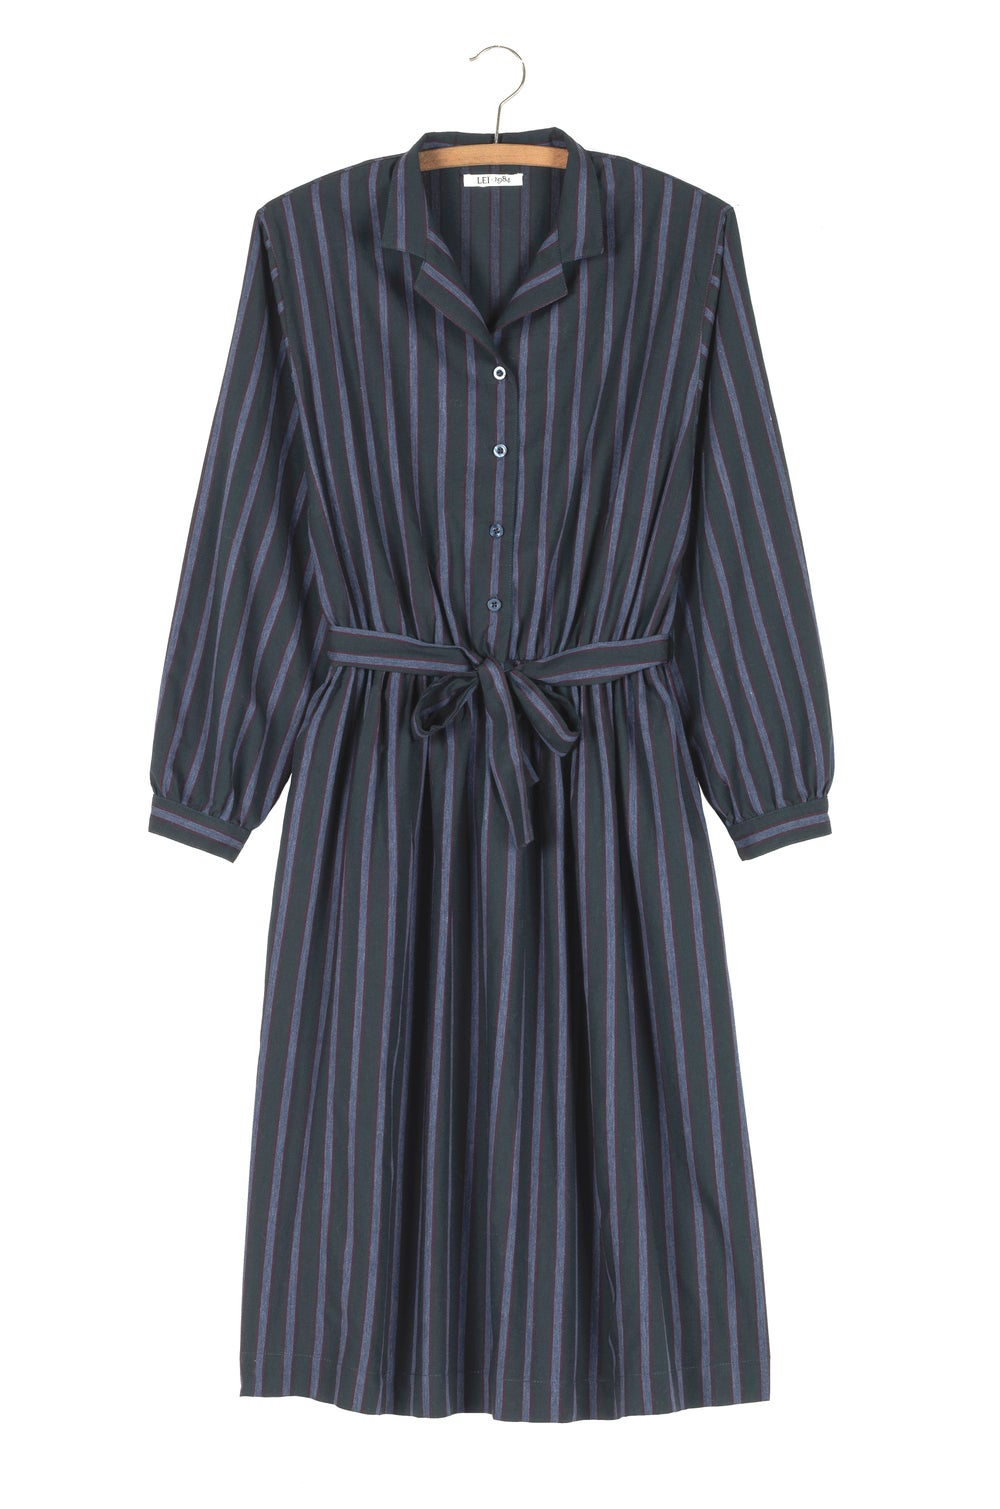 Image of Robe ALEXANDRINE rayée forêt/bordeaux 169€ -50%